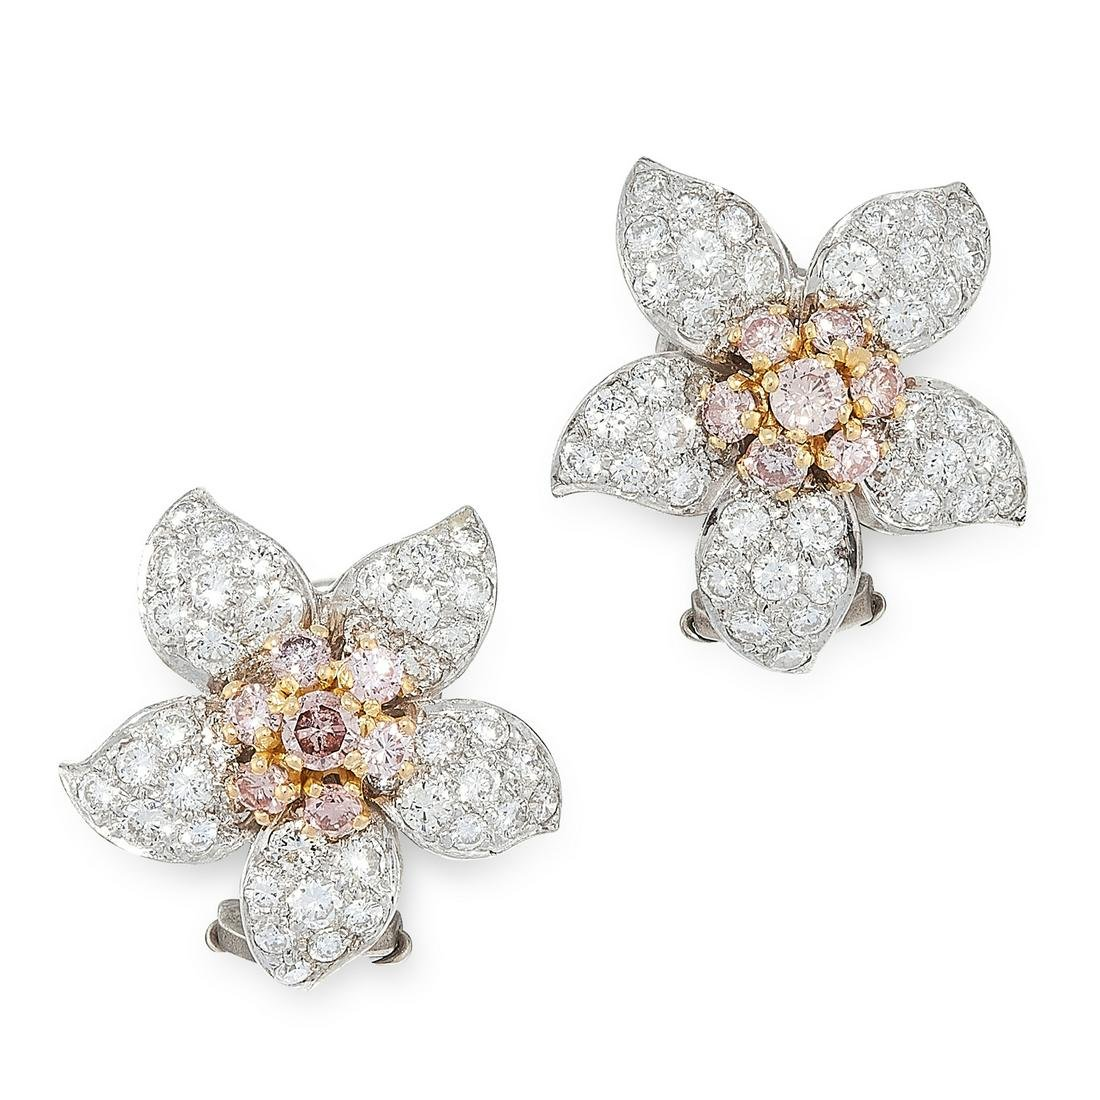 A PAIR OF FANCY PINK AND WHITE DIAMOND EARRINGS in 18ct